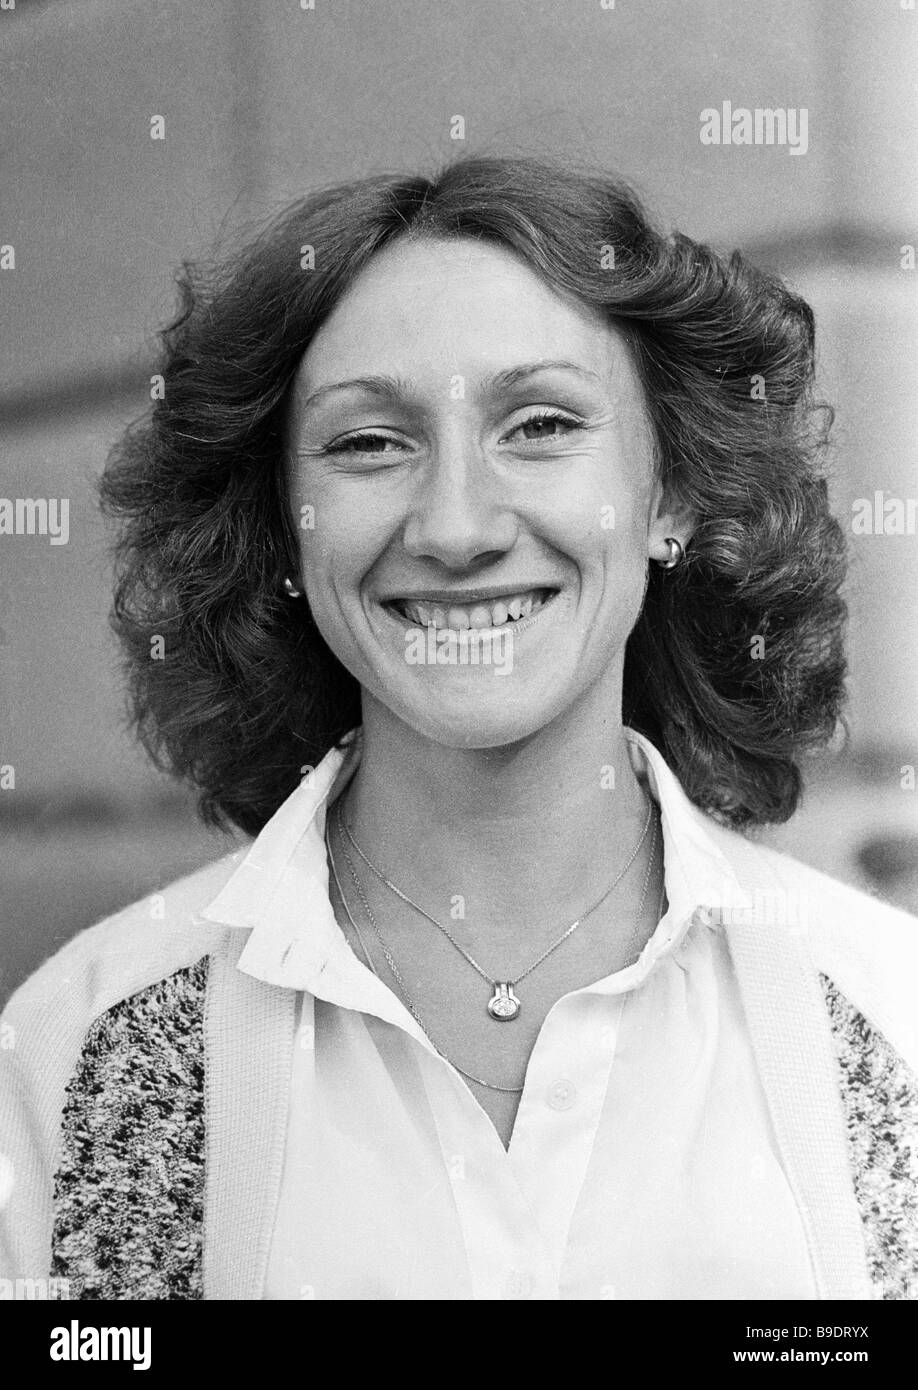 Tatiana Providokhina 1978 USSR and European champion in the 800 meter run and member of the Soviet track and field - Stock Image